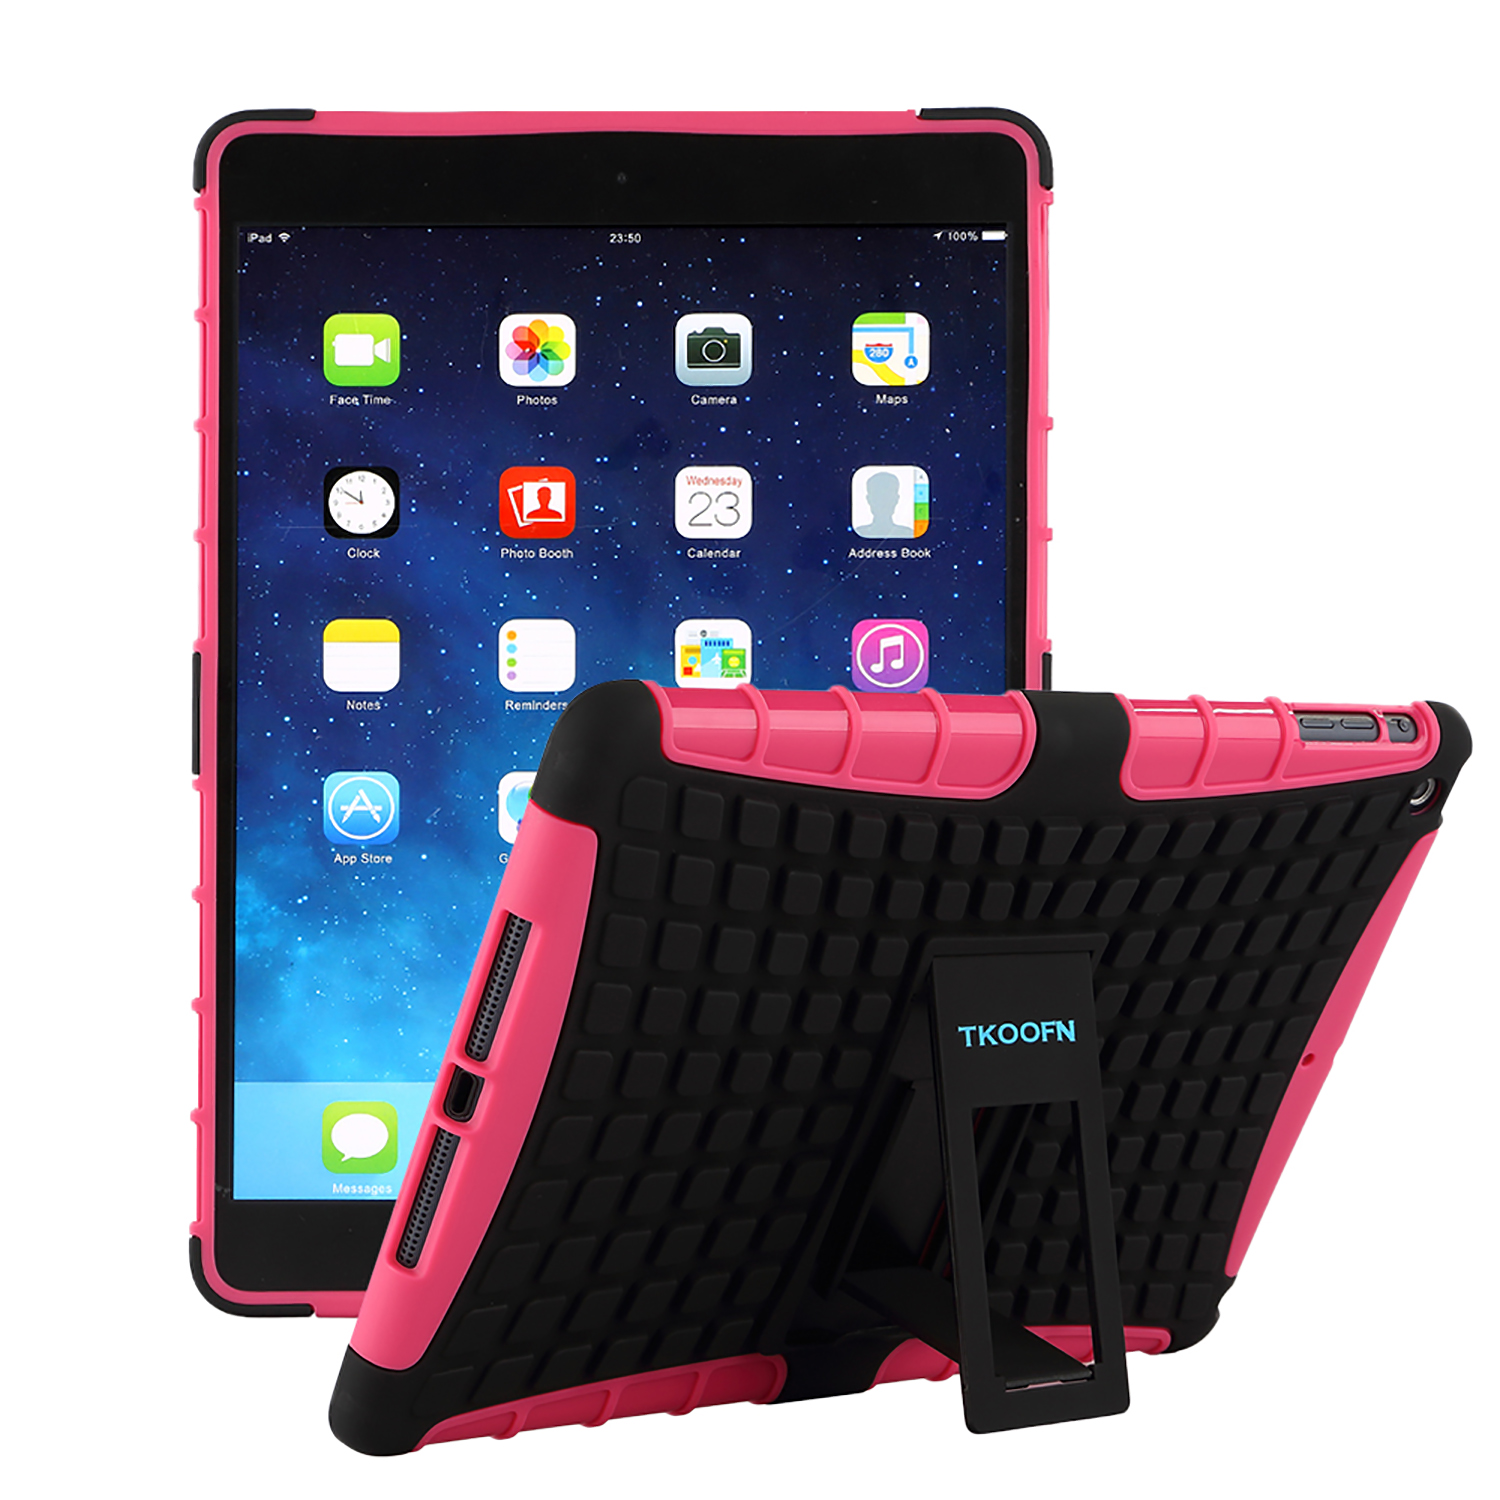 TKOOFN Heavy Duty Kids Shockproof Rubber Lot Armour Stand Case Cover for Apple iPad Air 22014(A1566/ A1567)